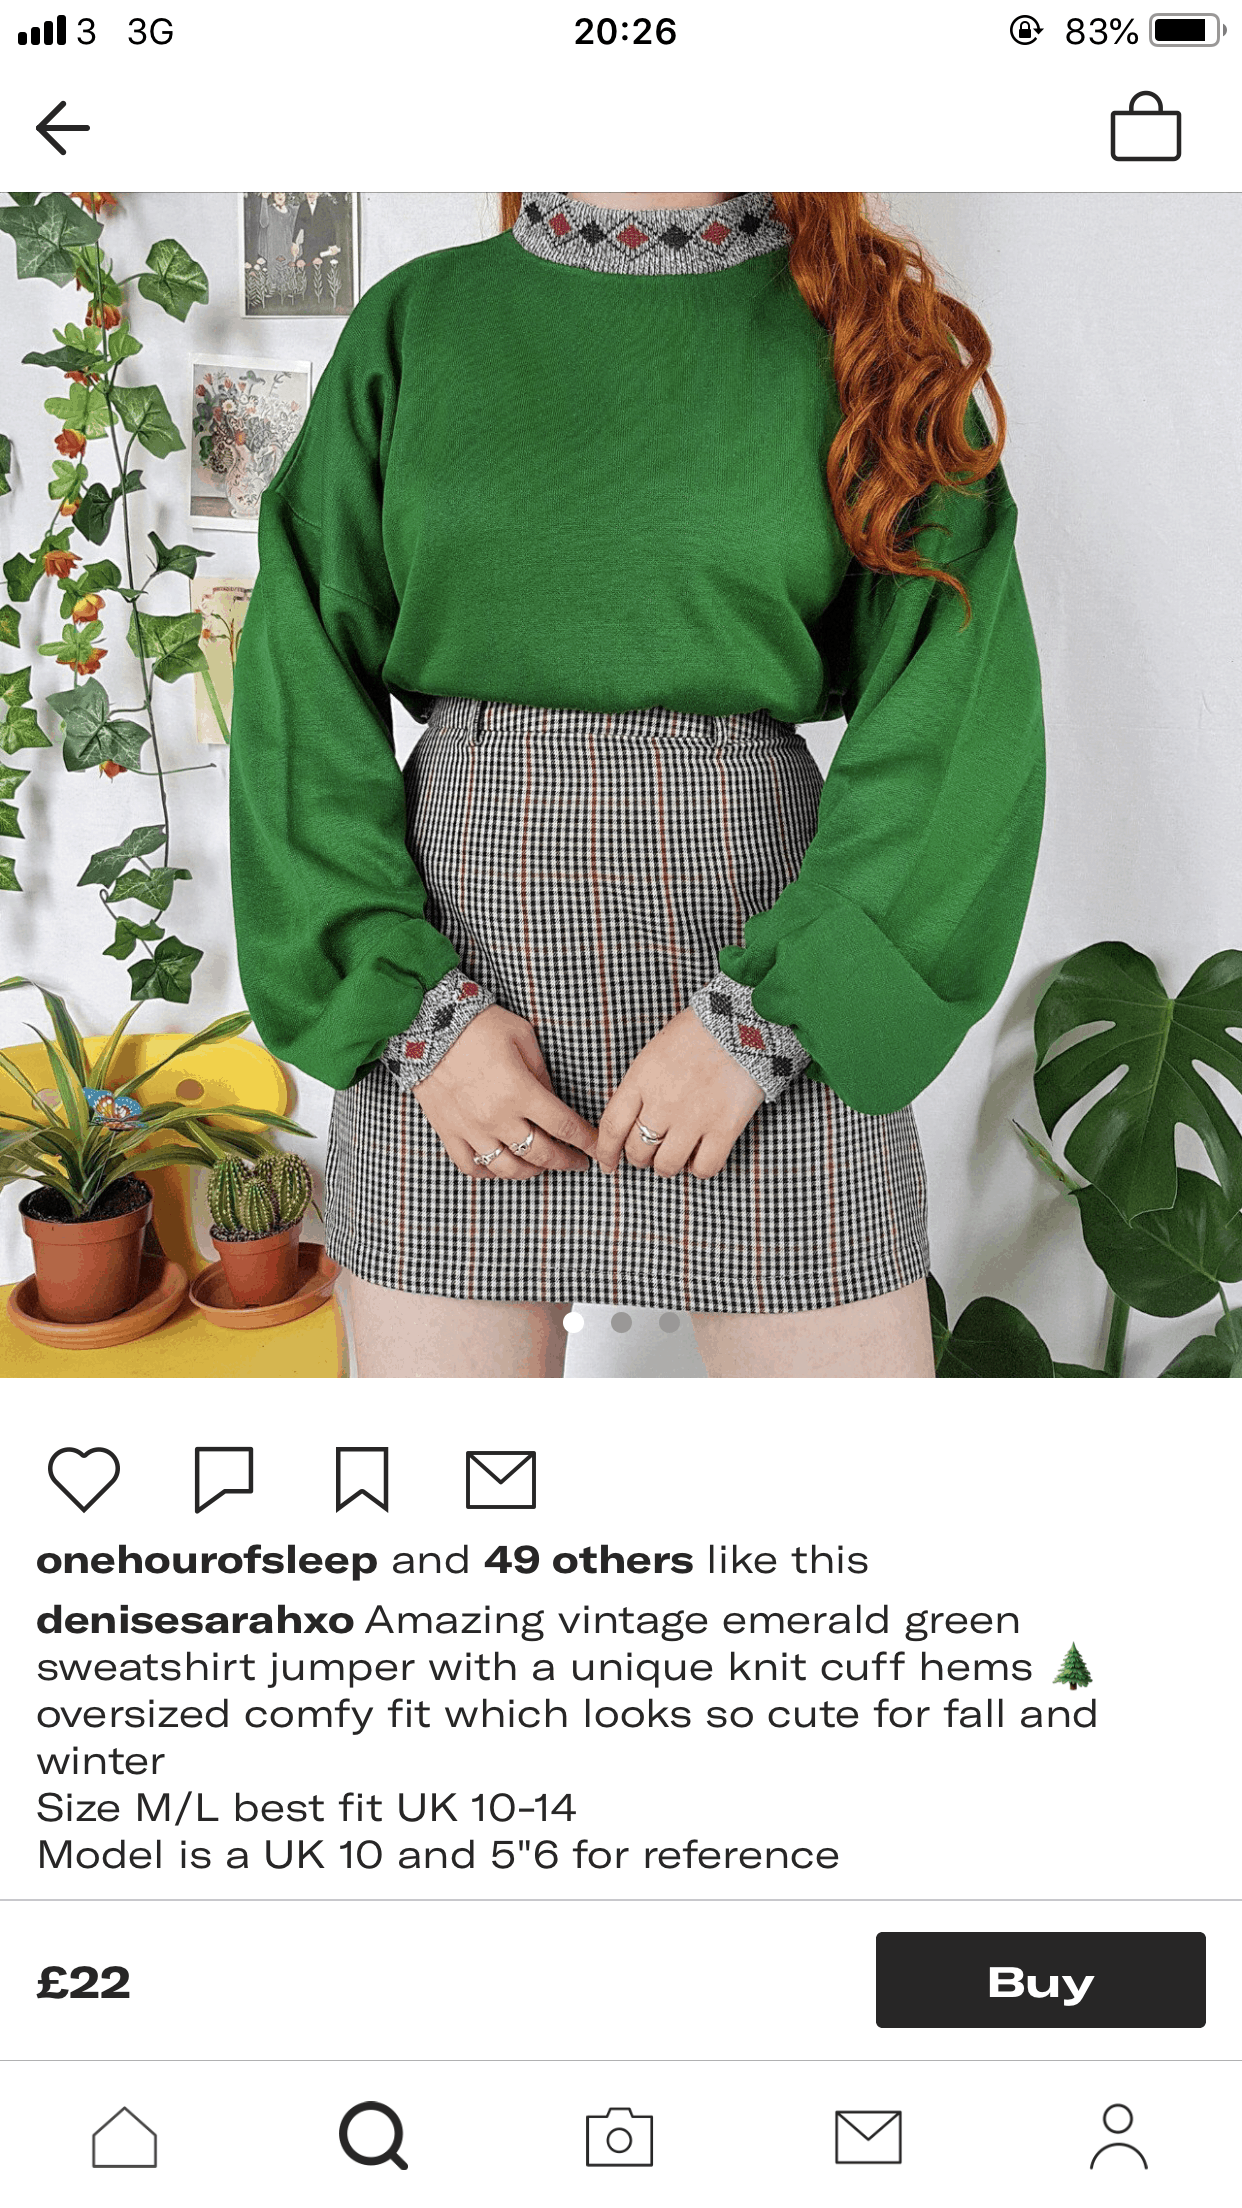 Emerald Green Sweatshirt